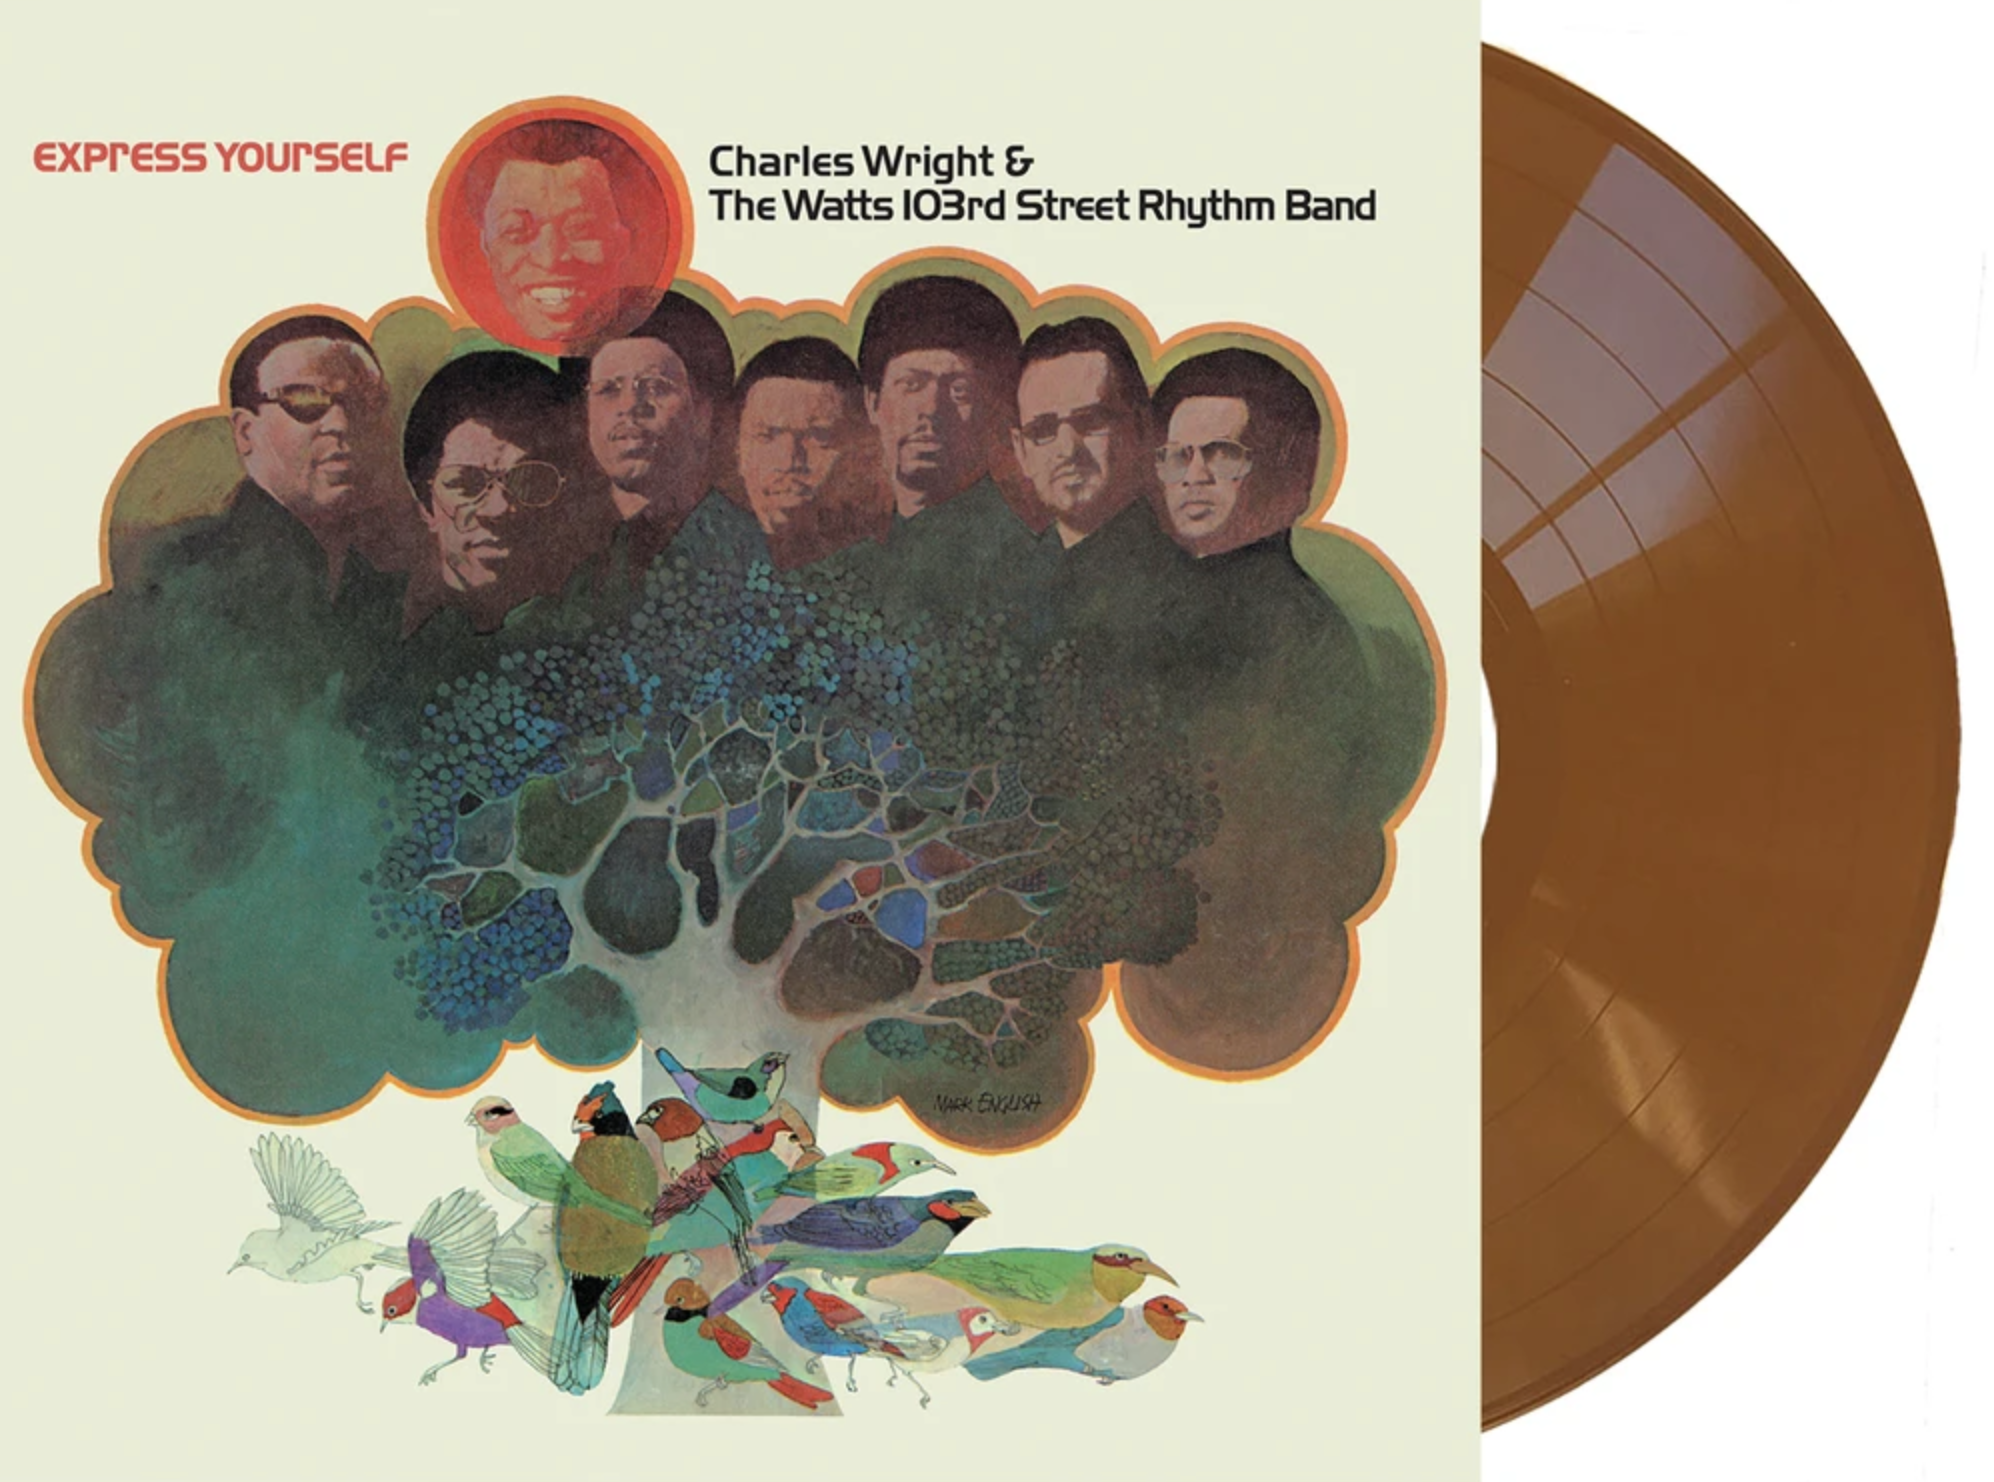 Charles Wright and Company Express Themselves